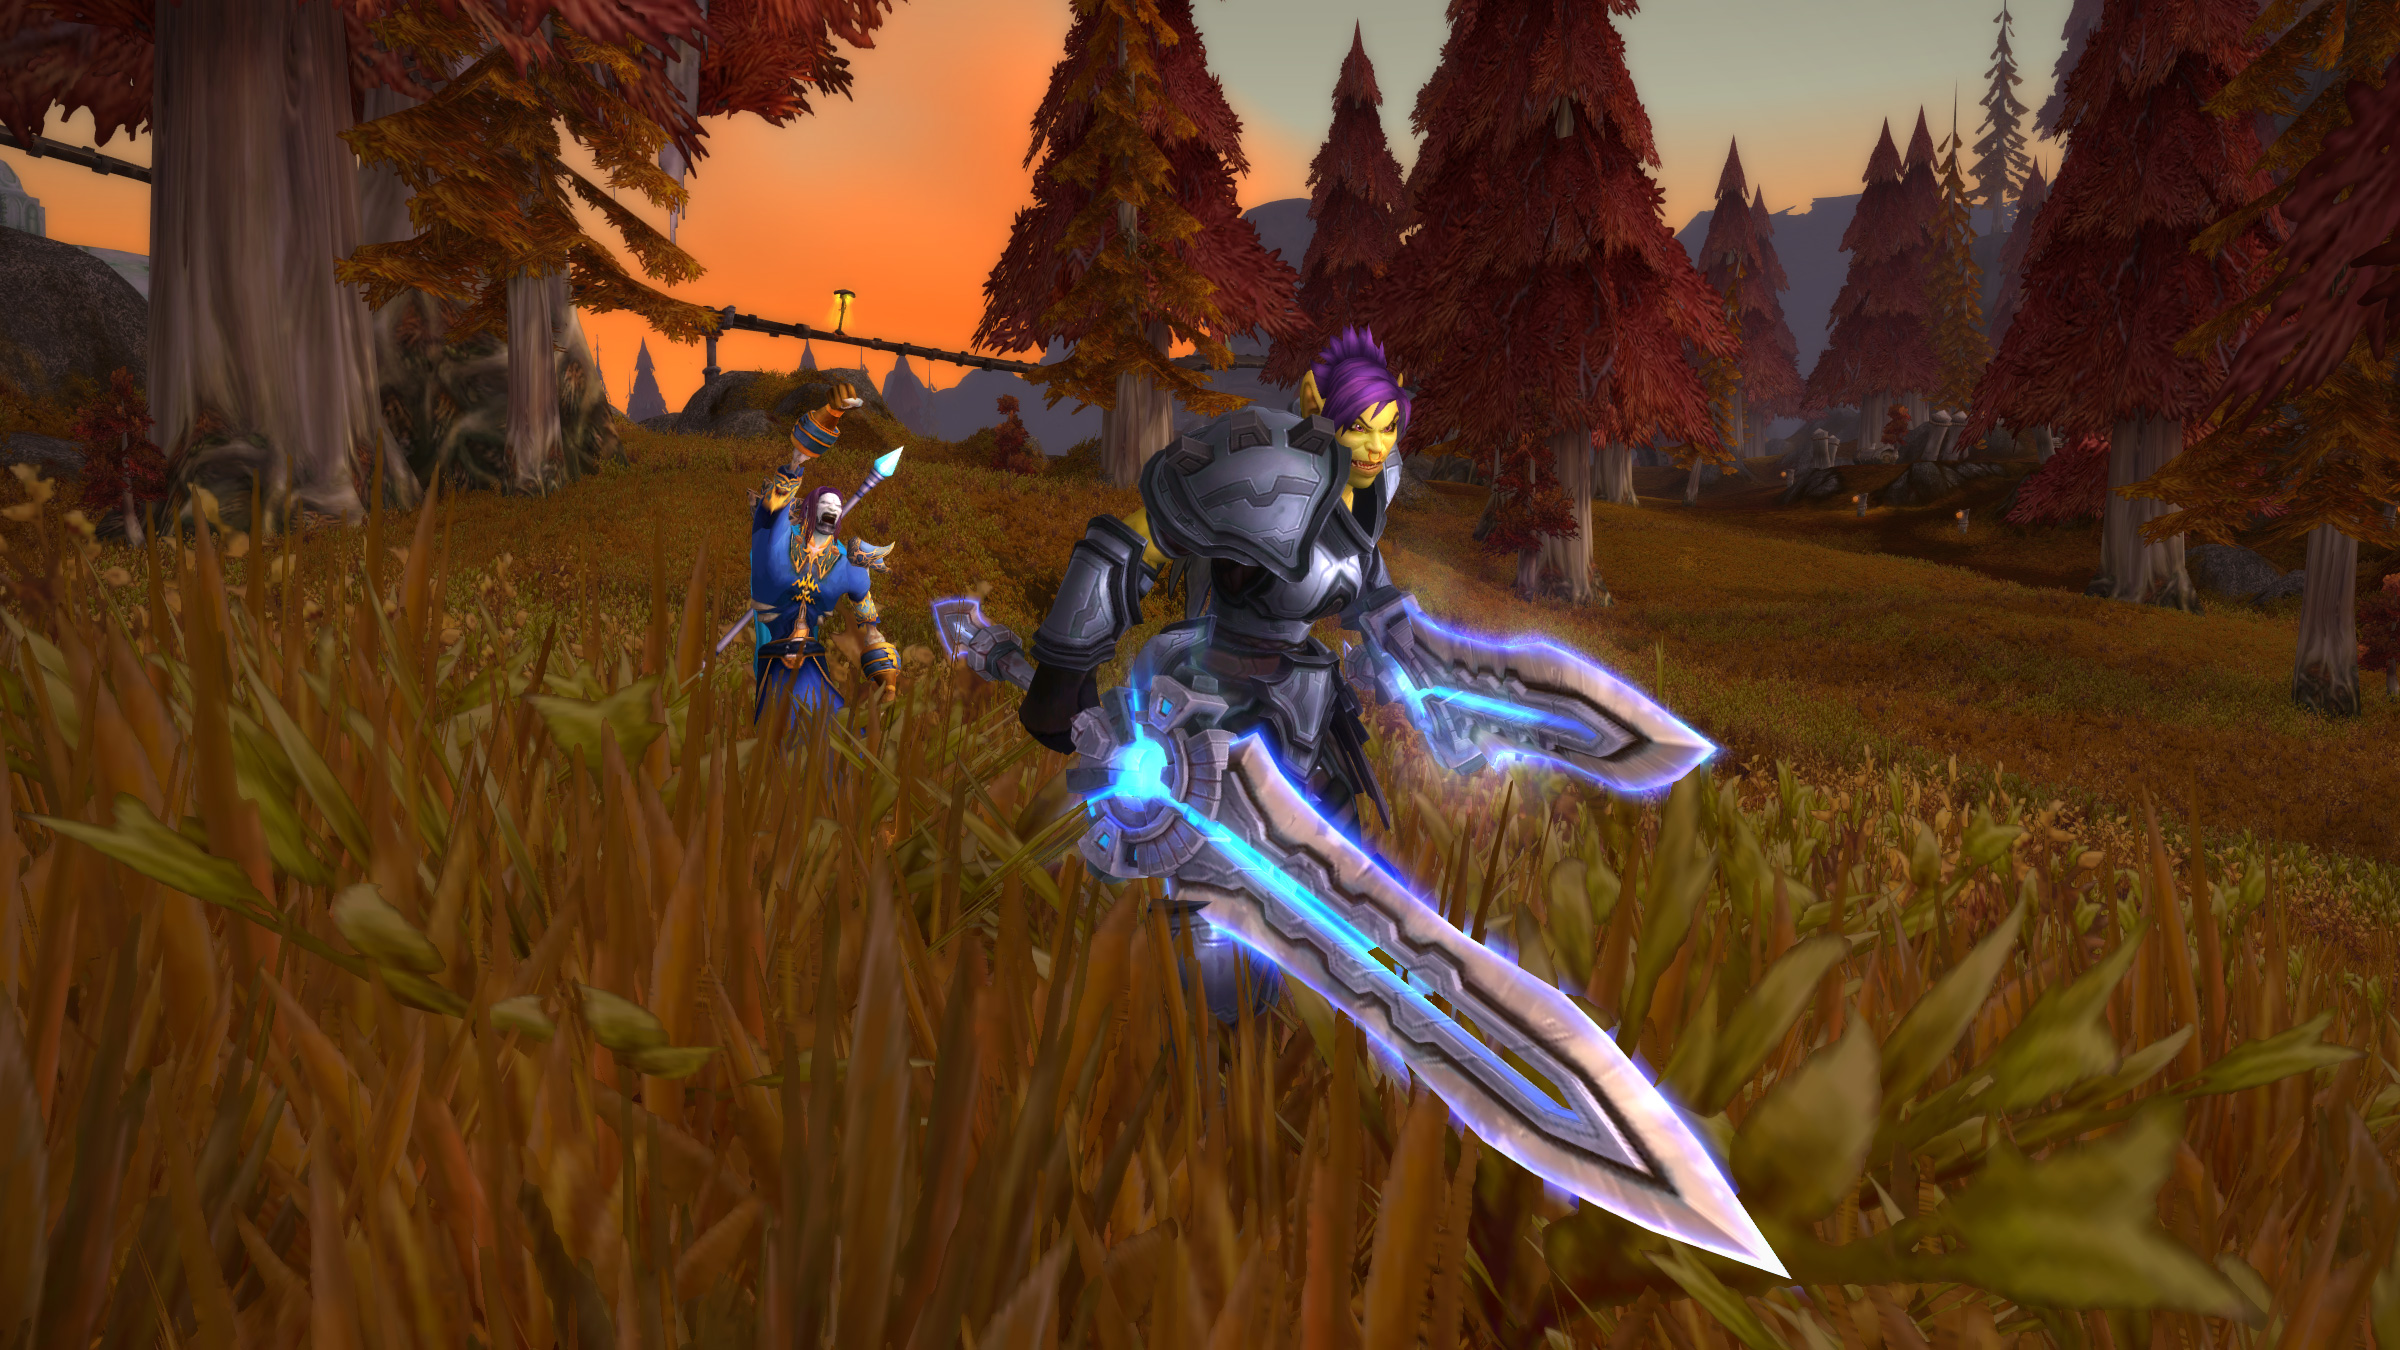 Explore Azeroth With Friends Using Party Sync